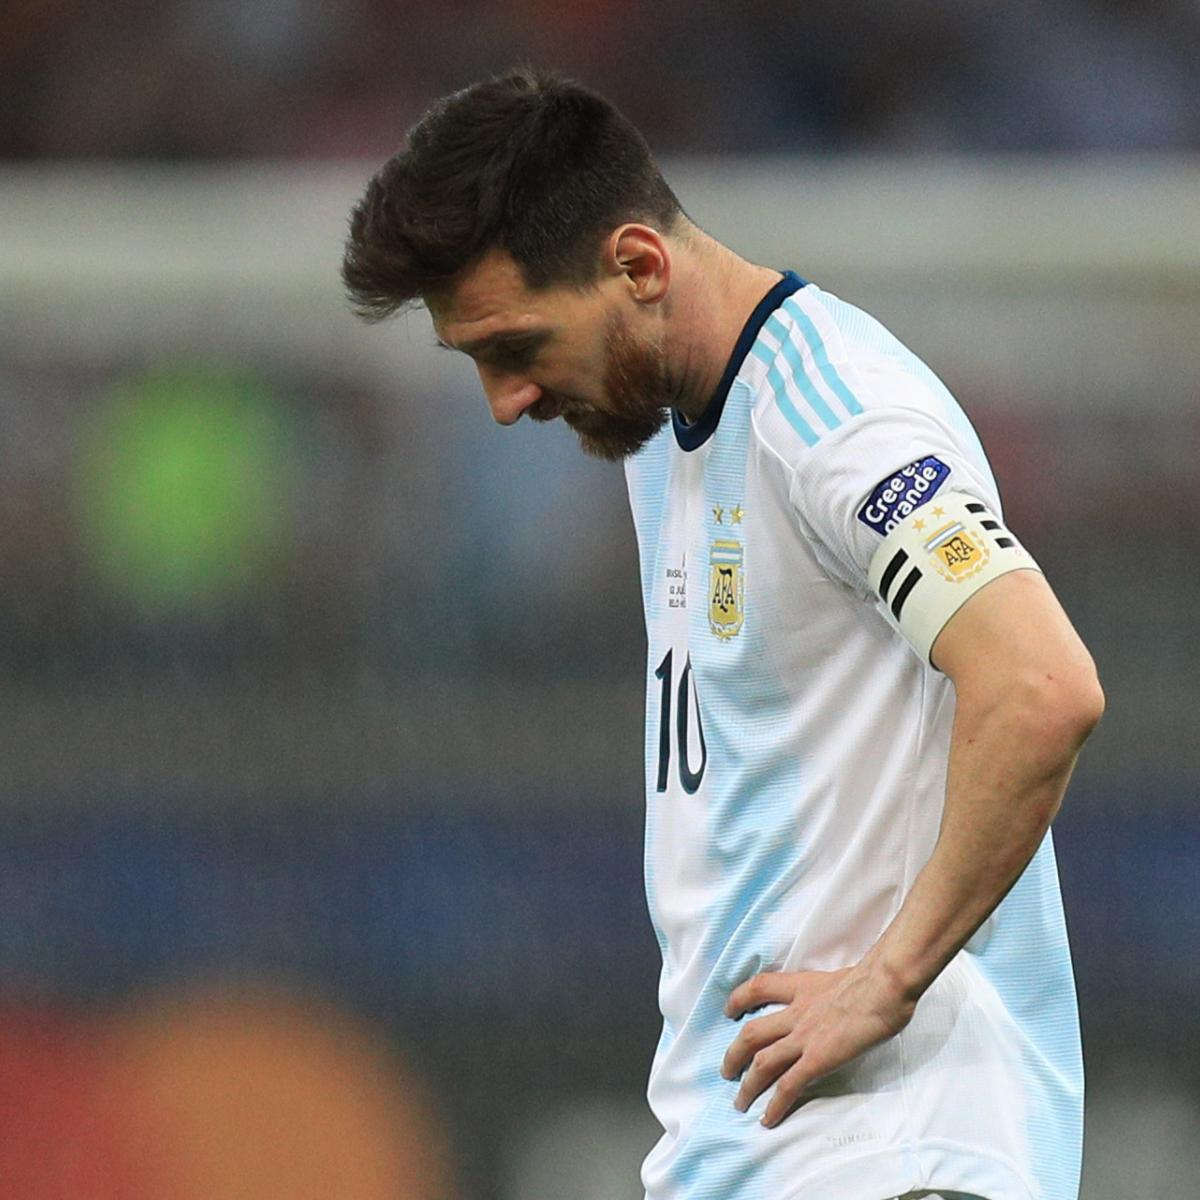 Argentina captain Lionel Messi slammed the refereeing at the Copa America after his side lost 2-0 to Brazil in the semi-finals on Tuesday, but he suggested he'll continue playing for the national team...